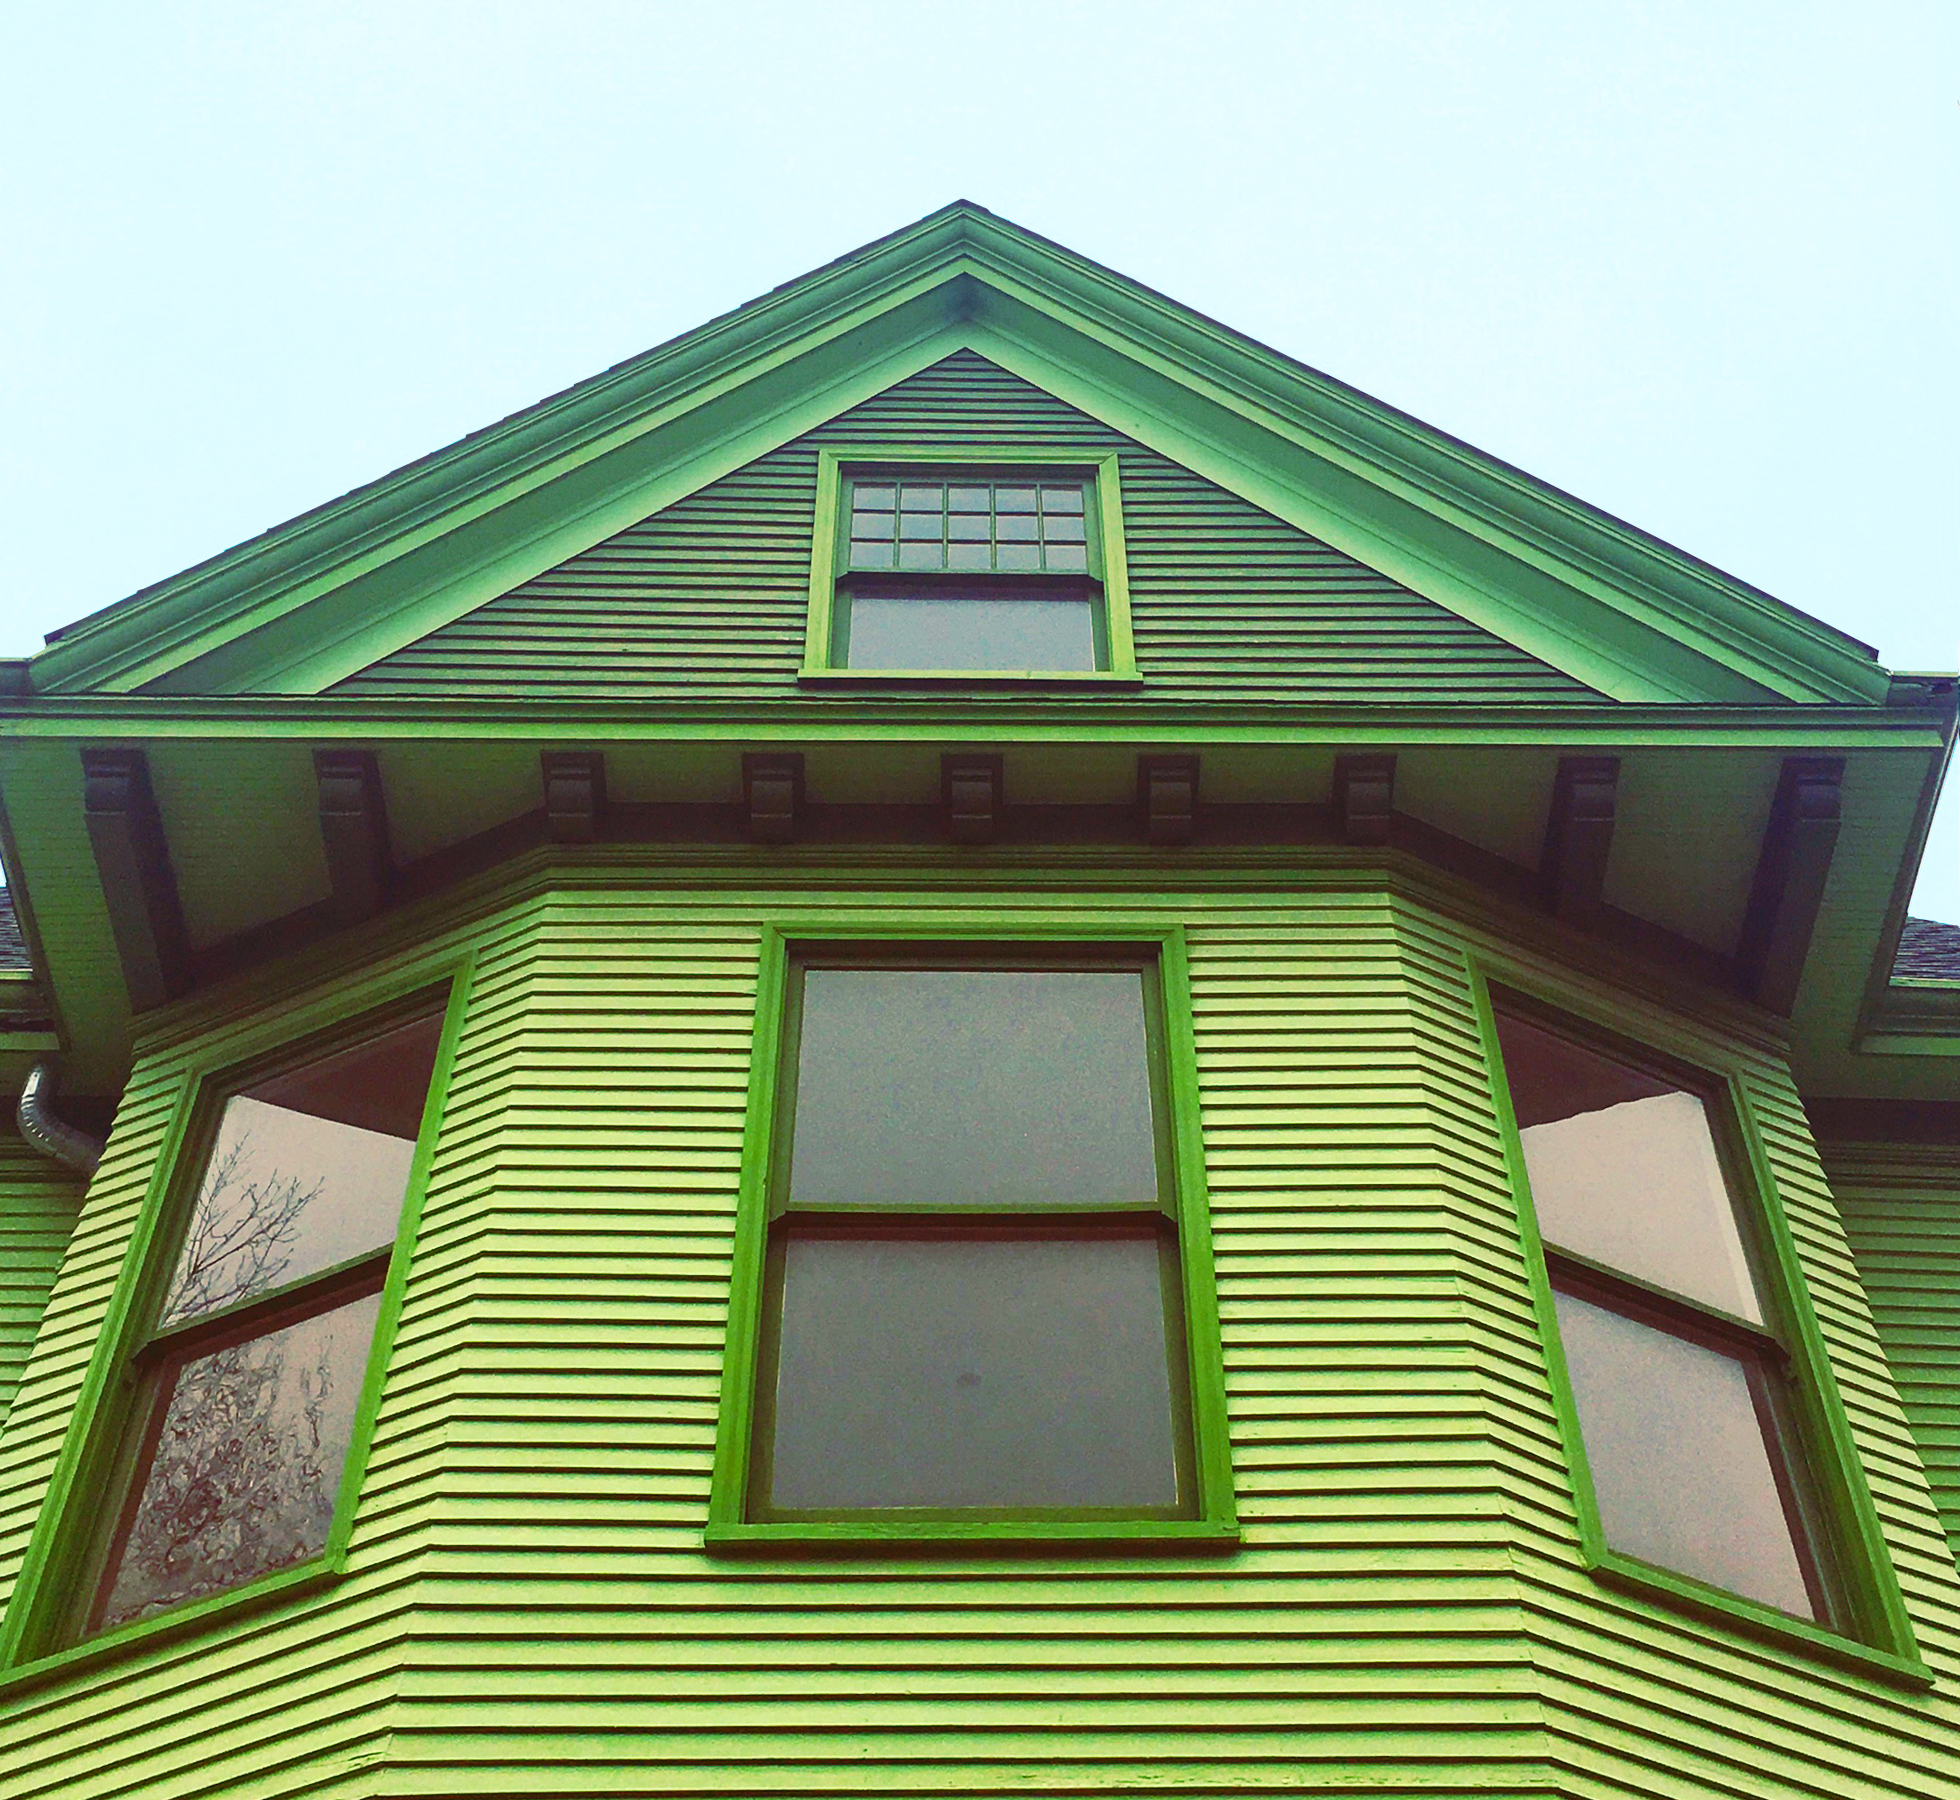 Home with bright green painted siding